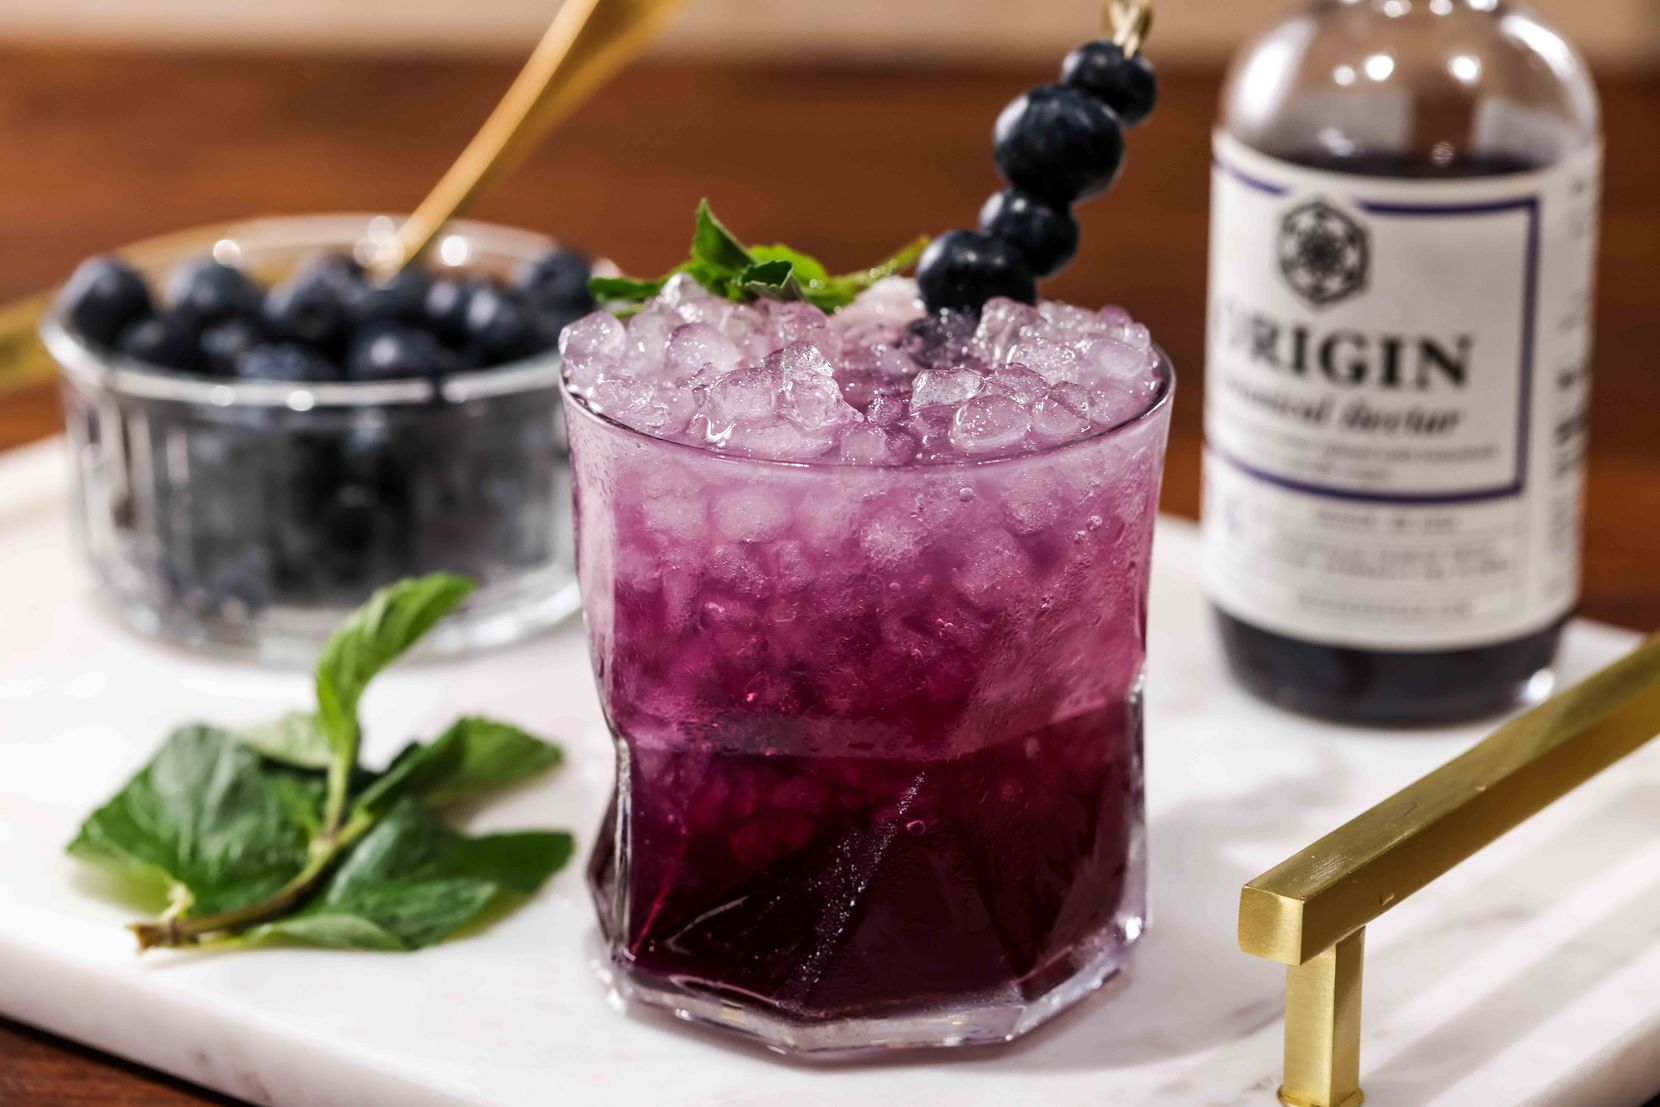 Purple Passion, an alcohol-free beverage by Beth Hutson from The Elevated Elixir